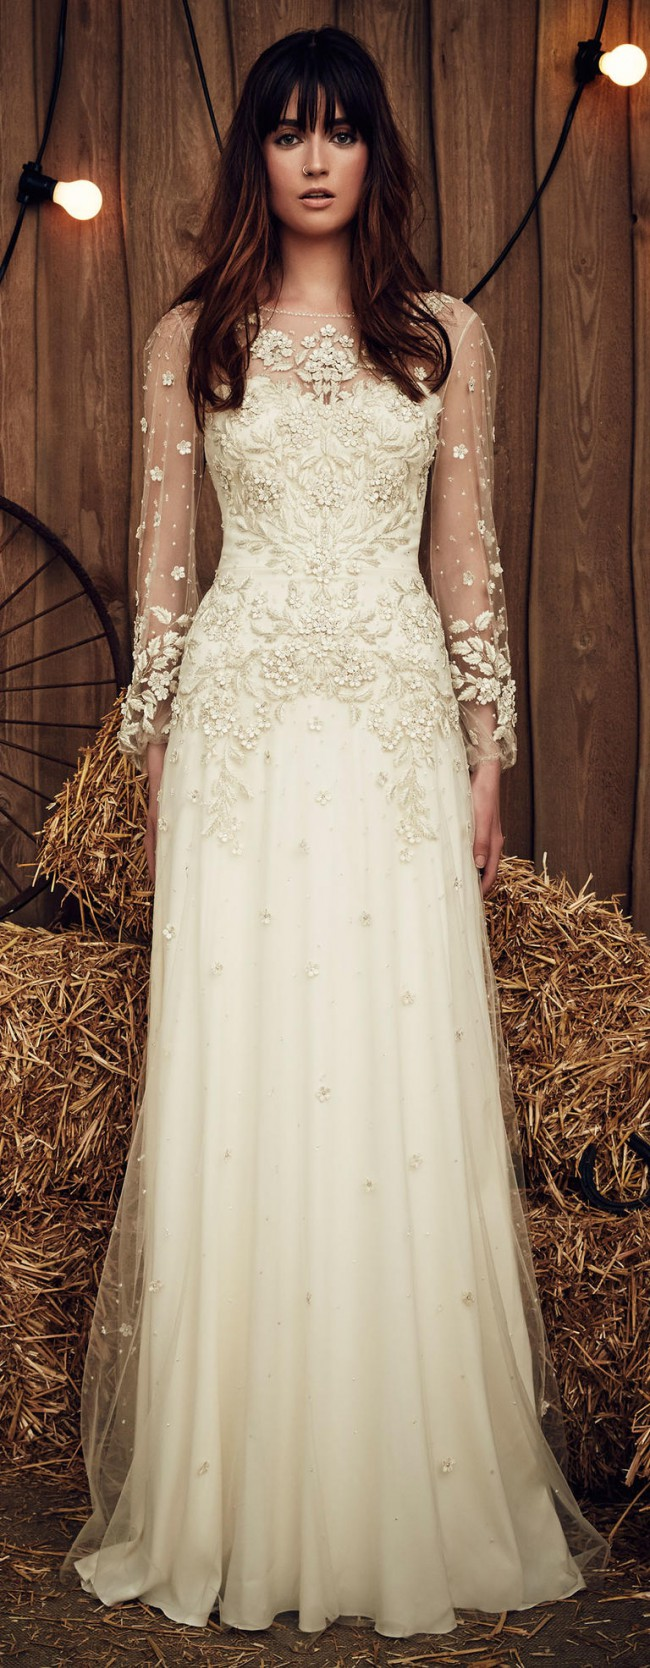 Jenny Packham Apache Wedding Dress on Sale 52% Off